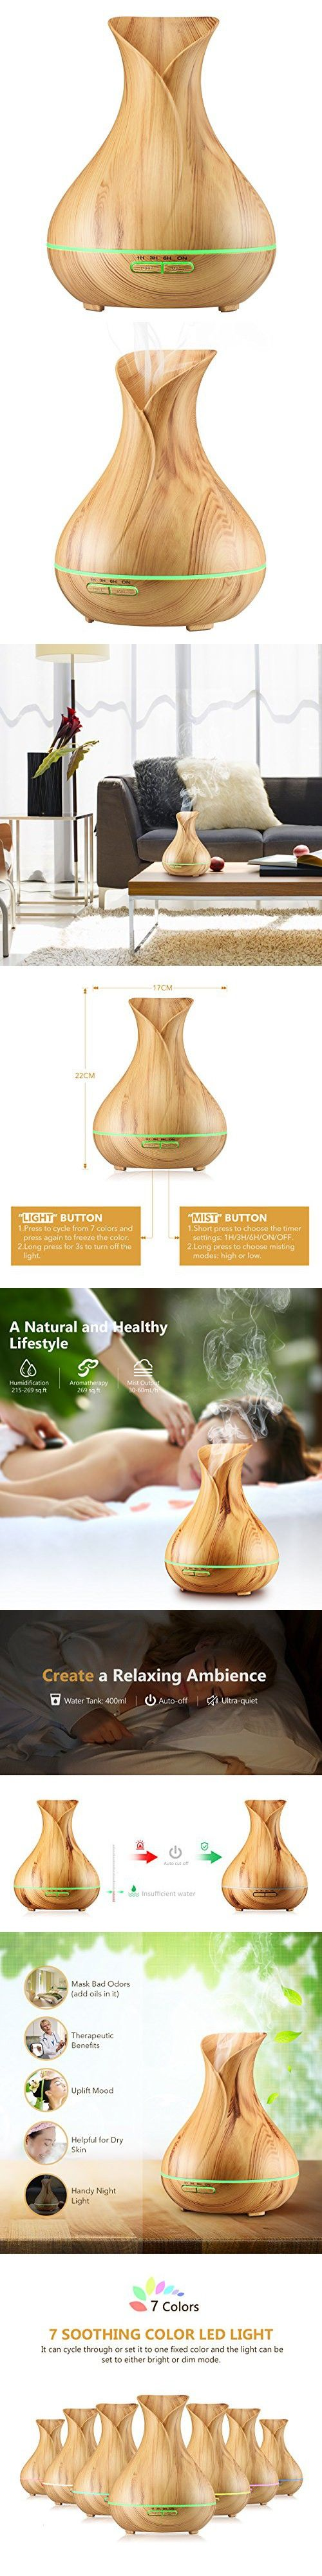 VicTsing 400ml Aromatherapy Essential Oil Diffuser, Ultrasonic Cool Mist Humidifier with Wood Grain Design, 4 Timer Settings for Office, Room, Spa